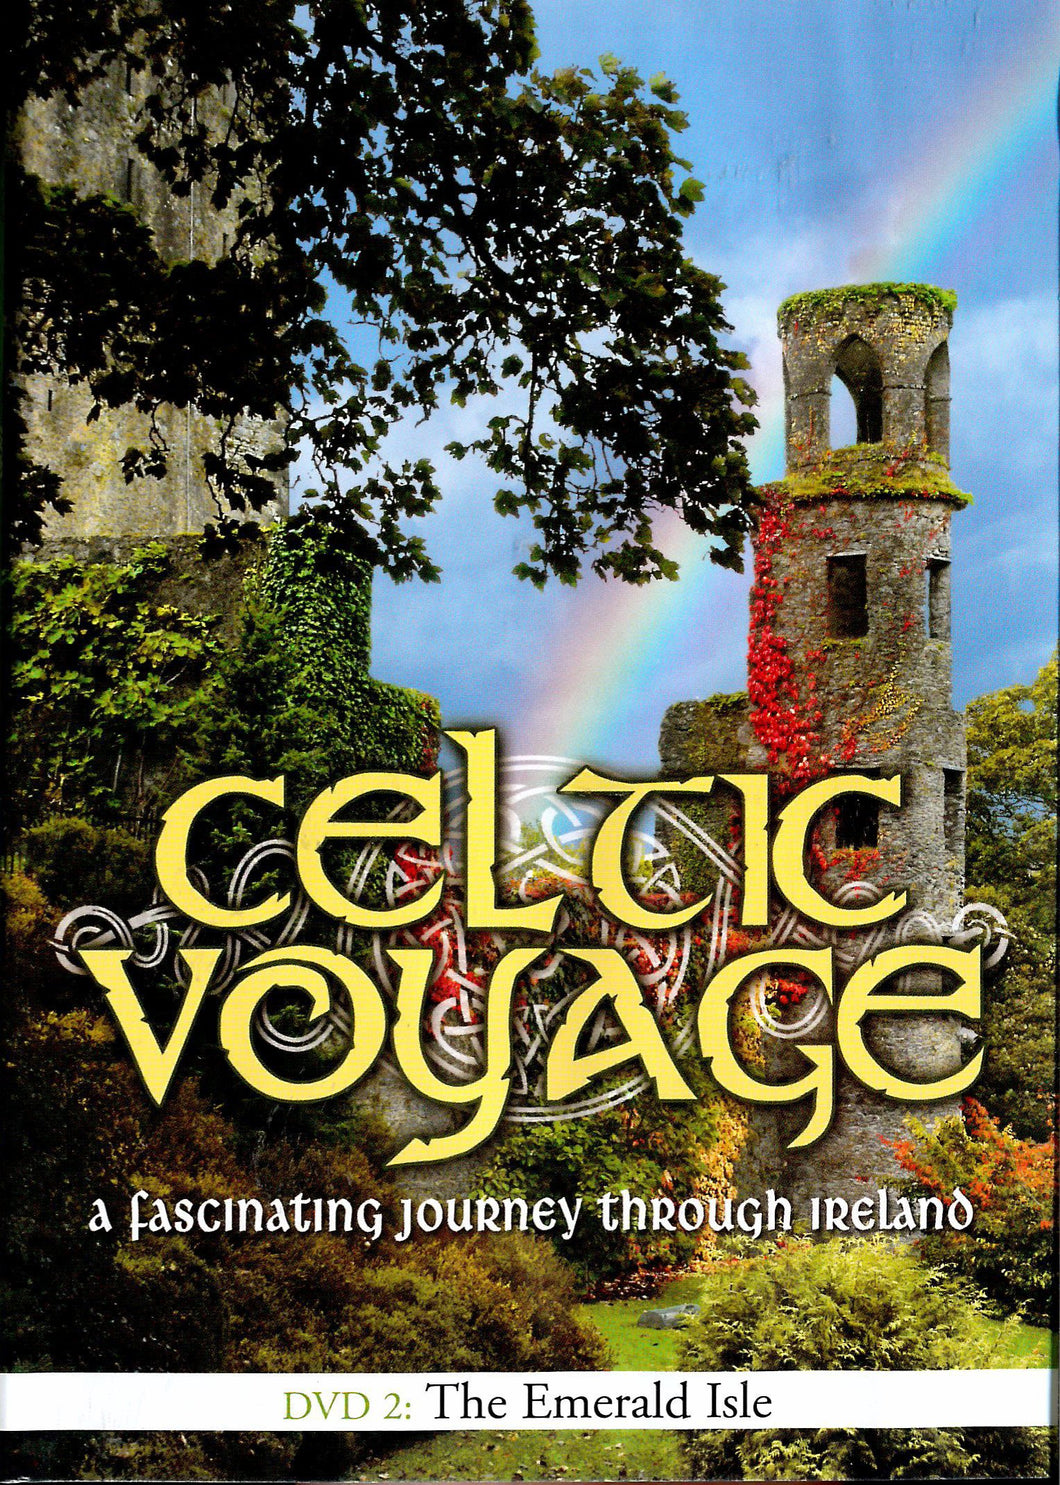 Celtic Voyage: A Fascinating Journey Through Ireland - DVD 2: The Emerald Isle